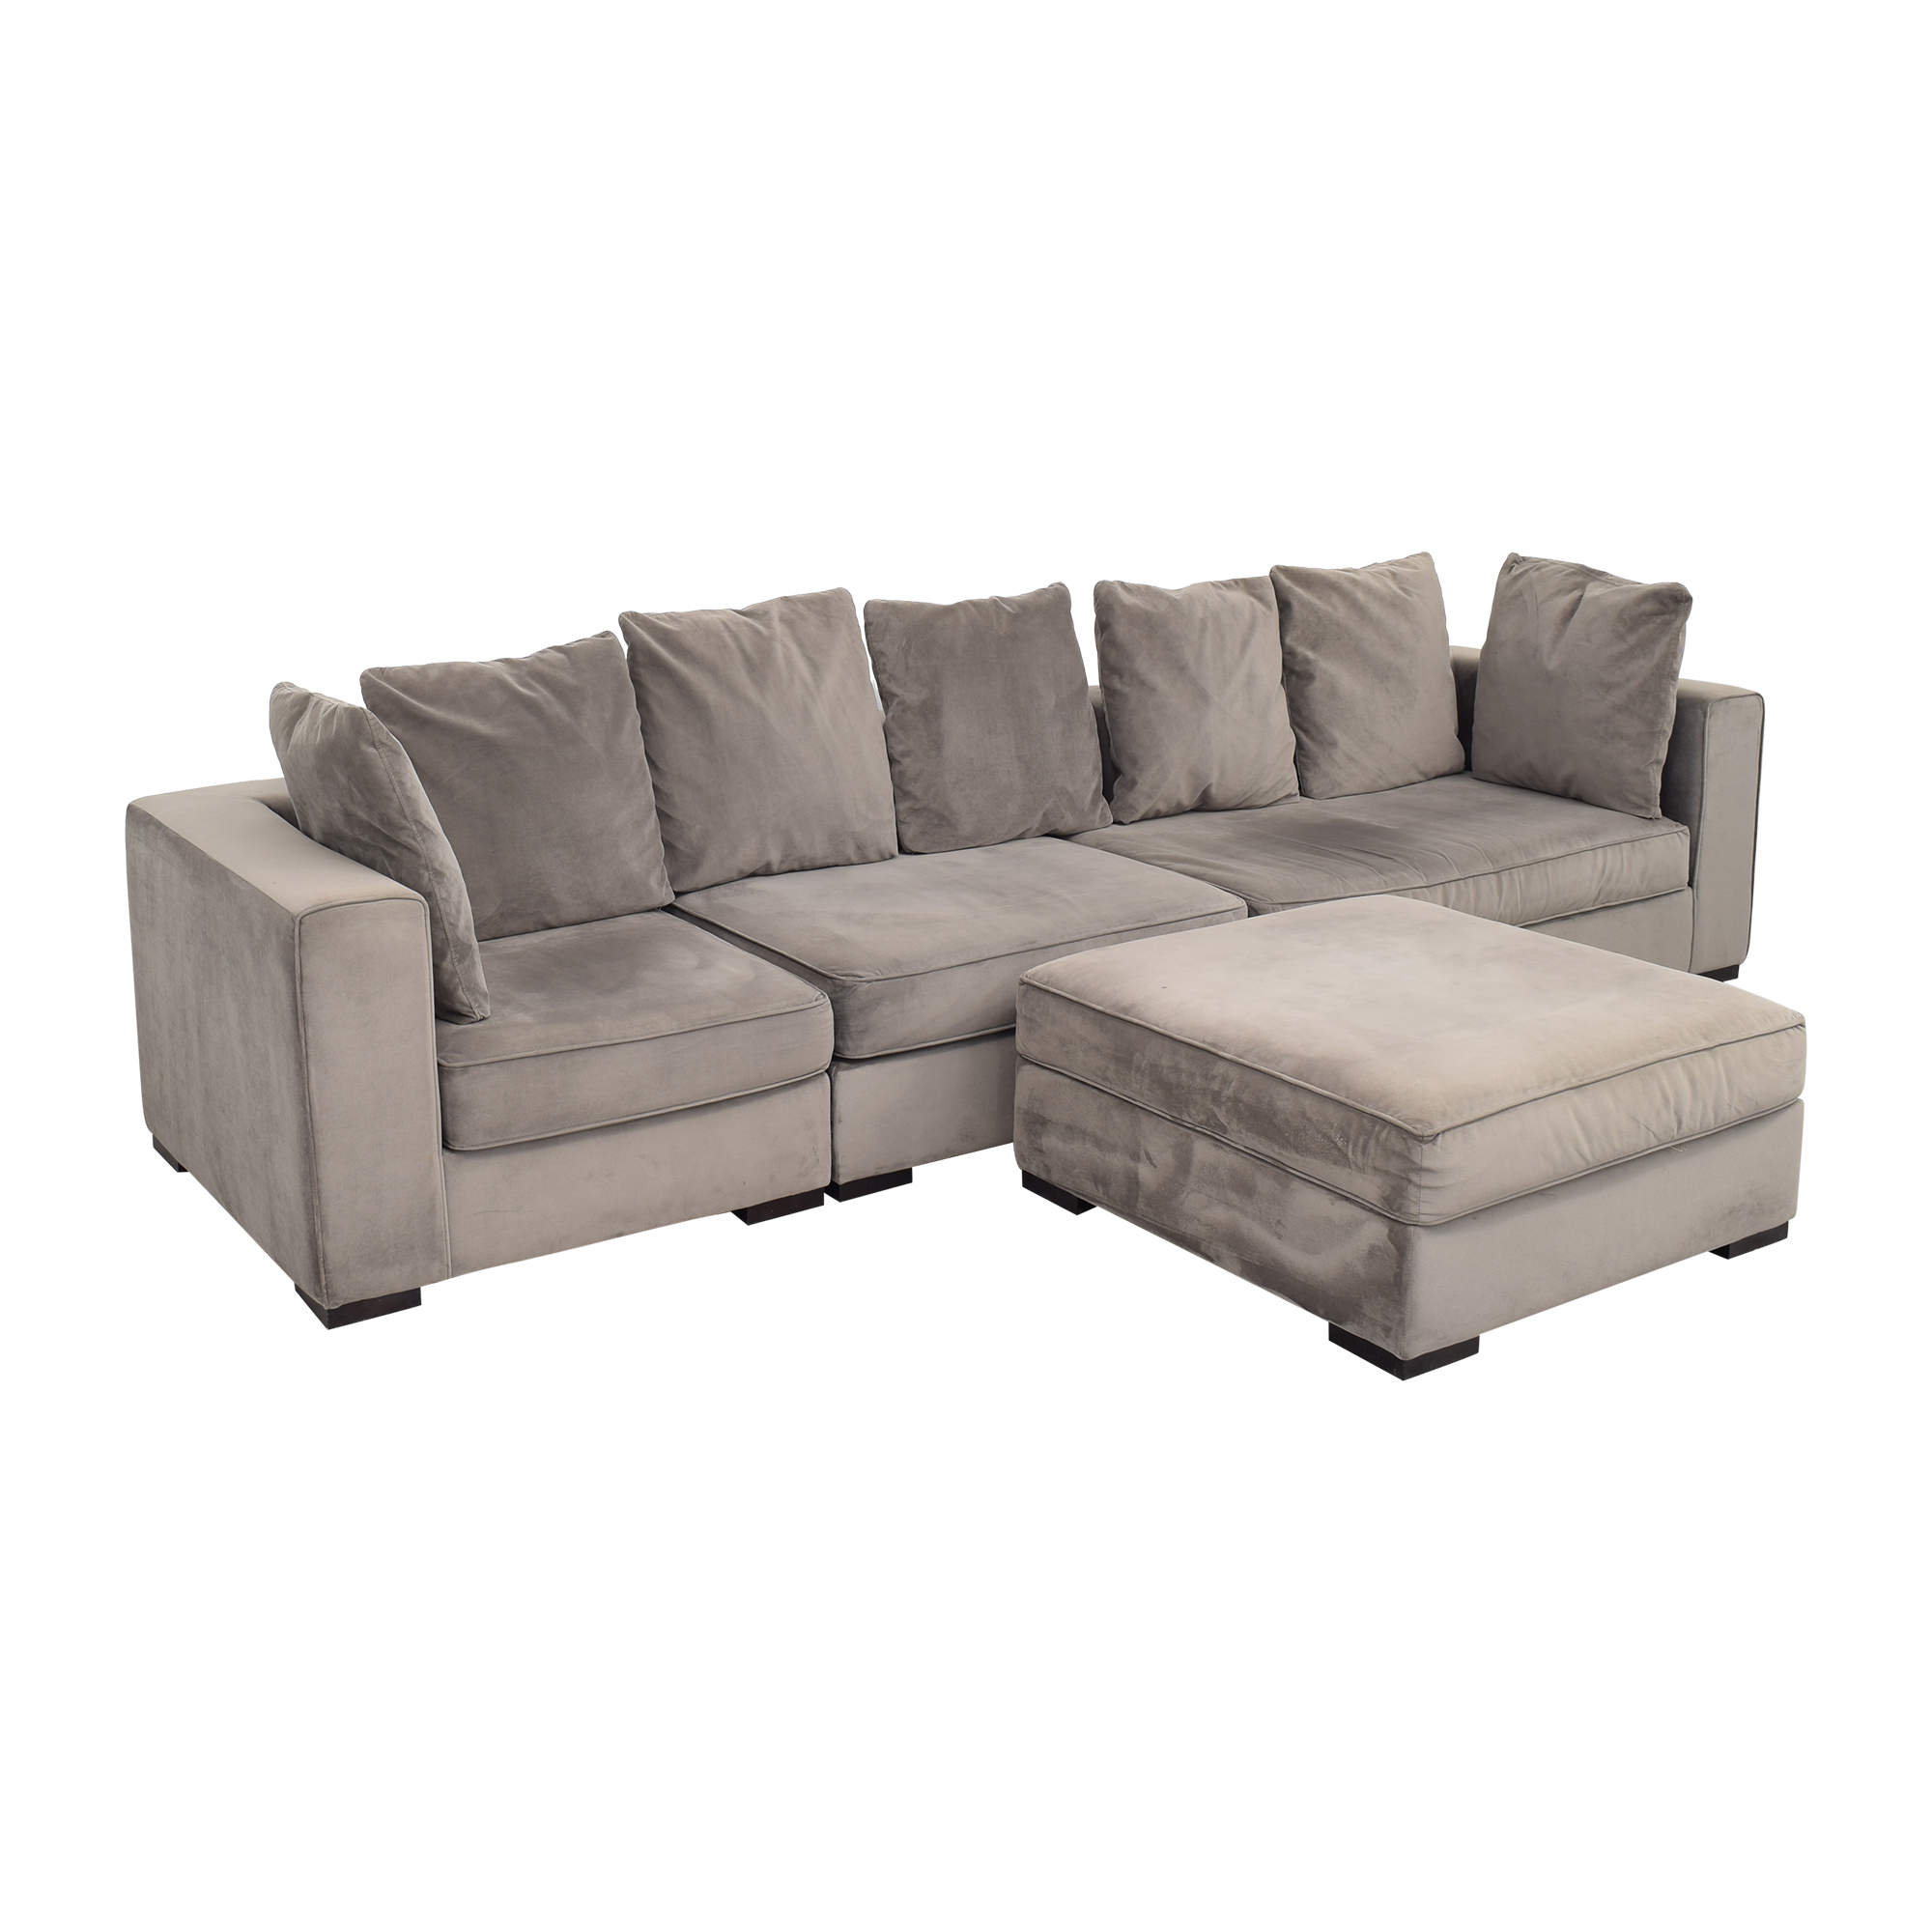 buy West Elm 3-Piece Sectional with Ottoman West Elm